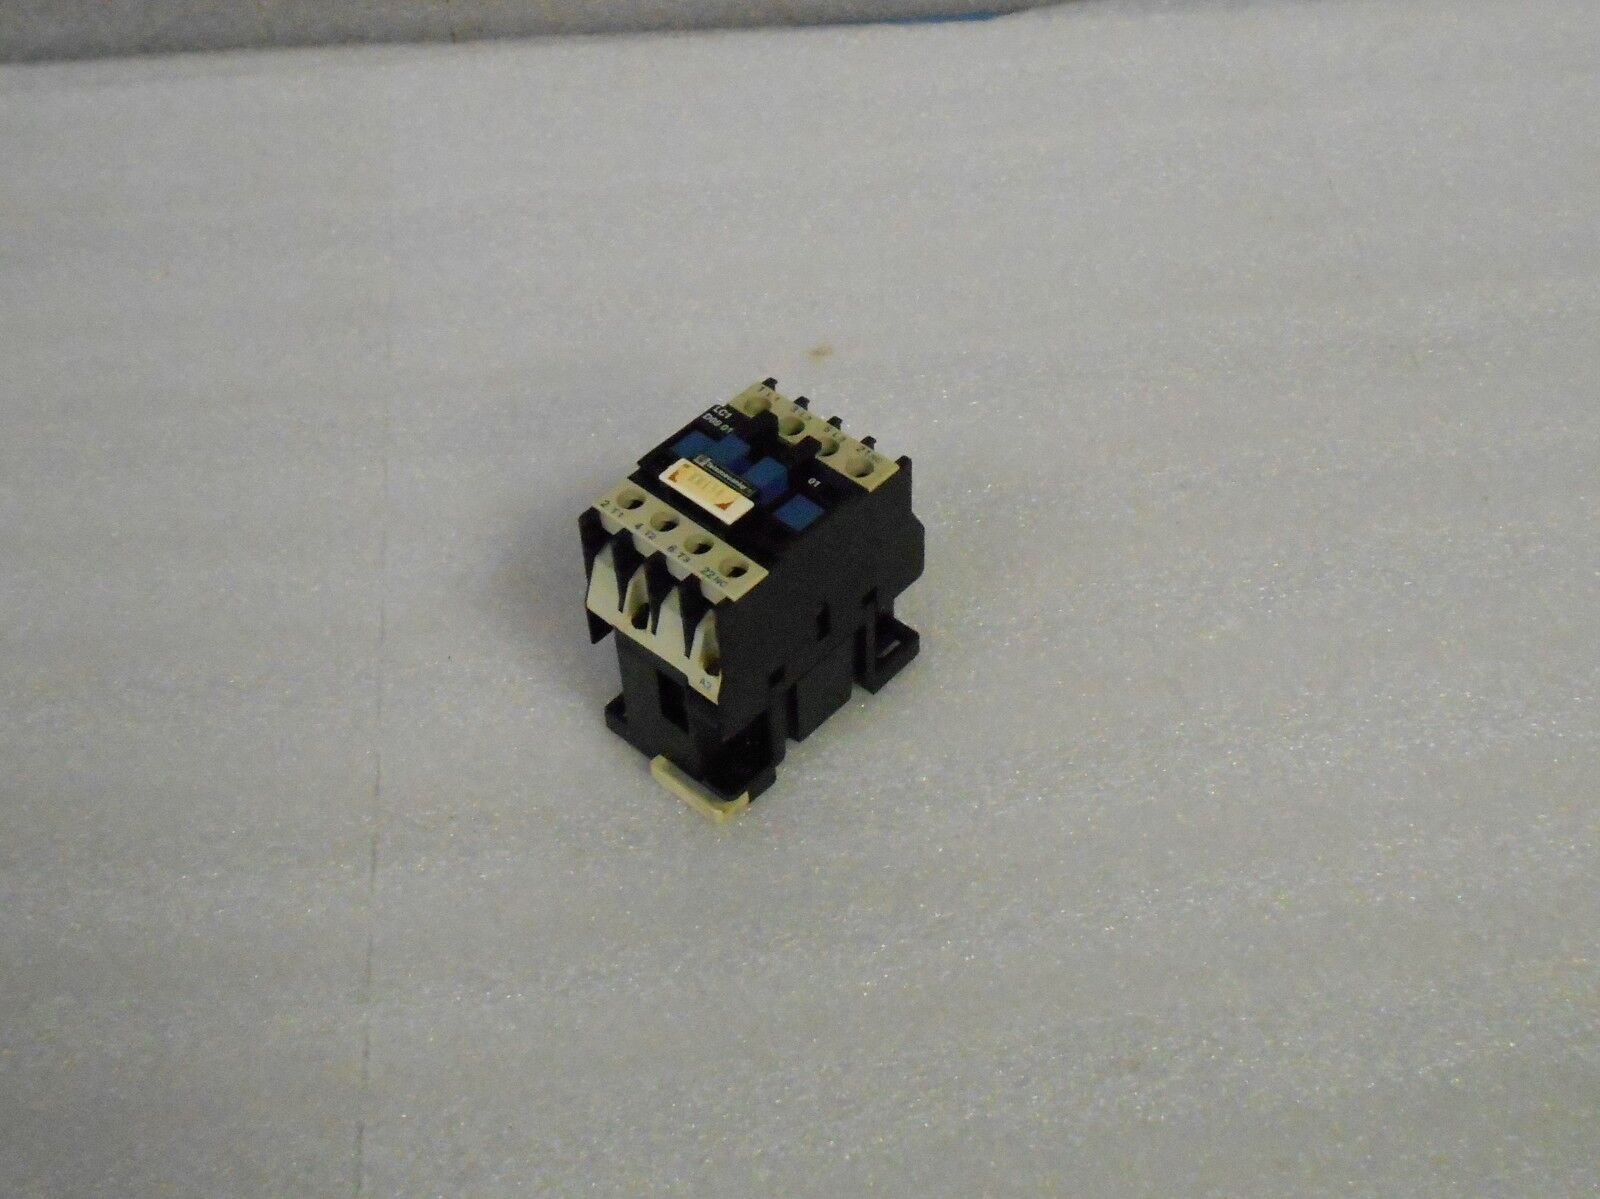 Telemecanique Contactor, LC1 D09 01, LD0901, 100V Coil, Used, WARRANTY